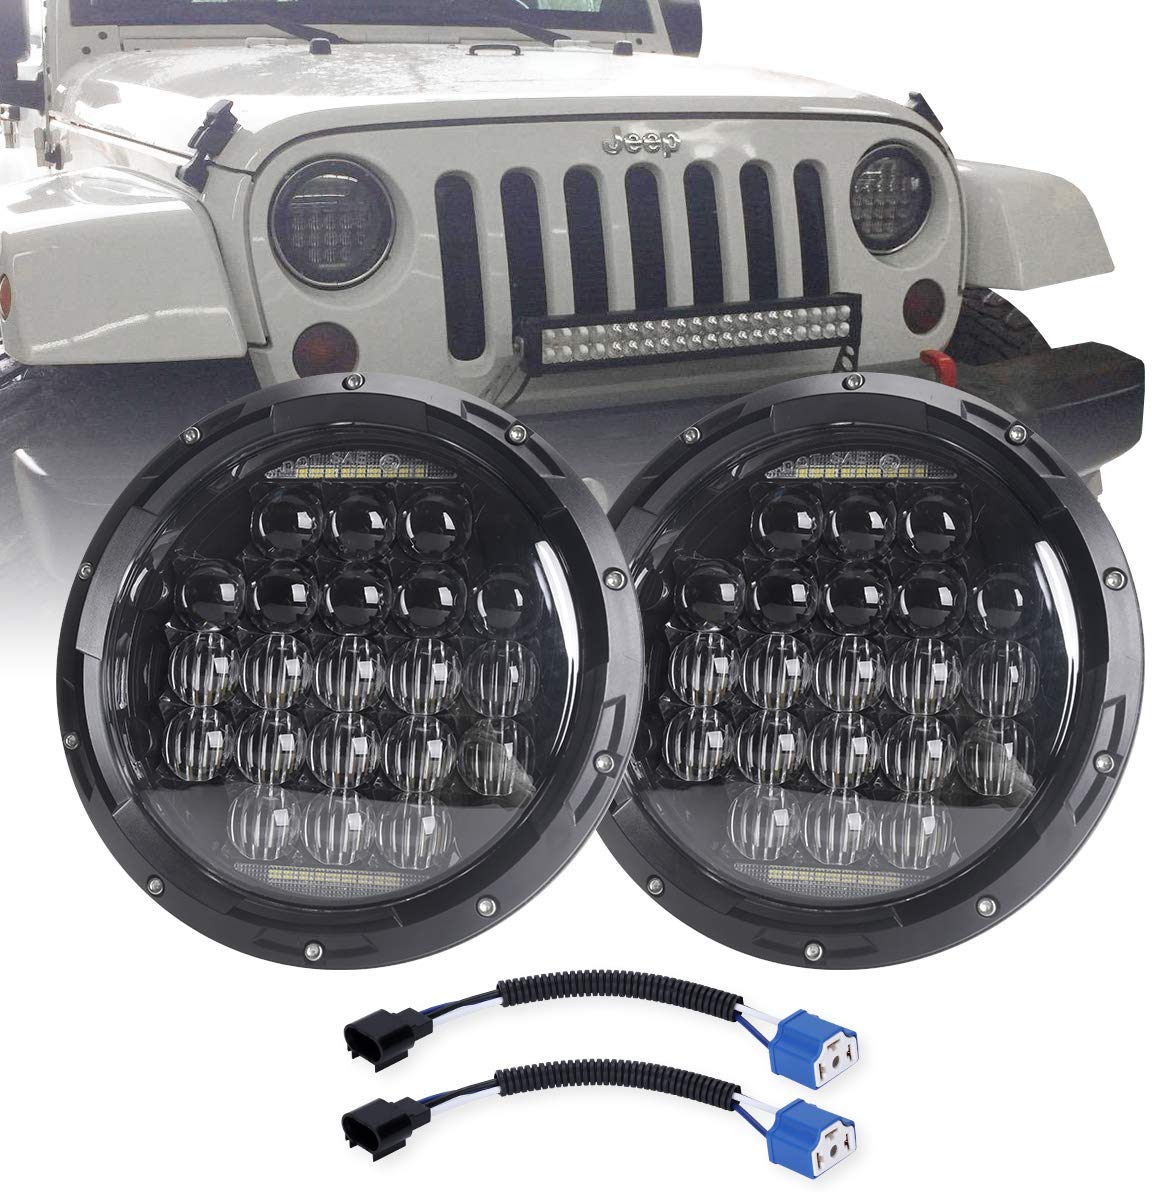 7 Inch Round 5D 2019 Newest Design 130w LED Projector Headlight With DRL For Jeep Wrangler JK TJ LJ CJ For Harley Motorcycles